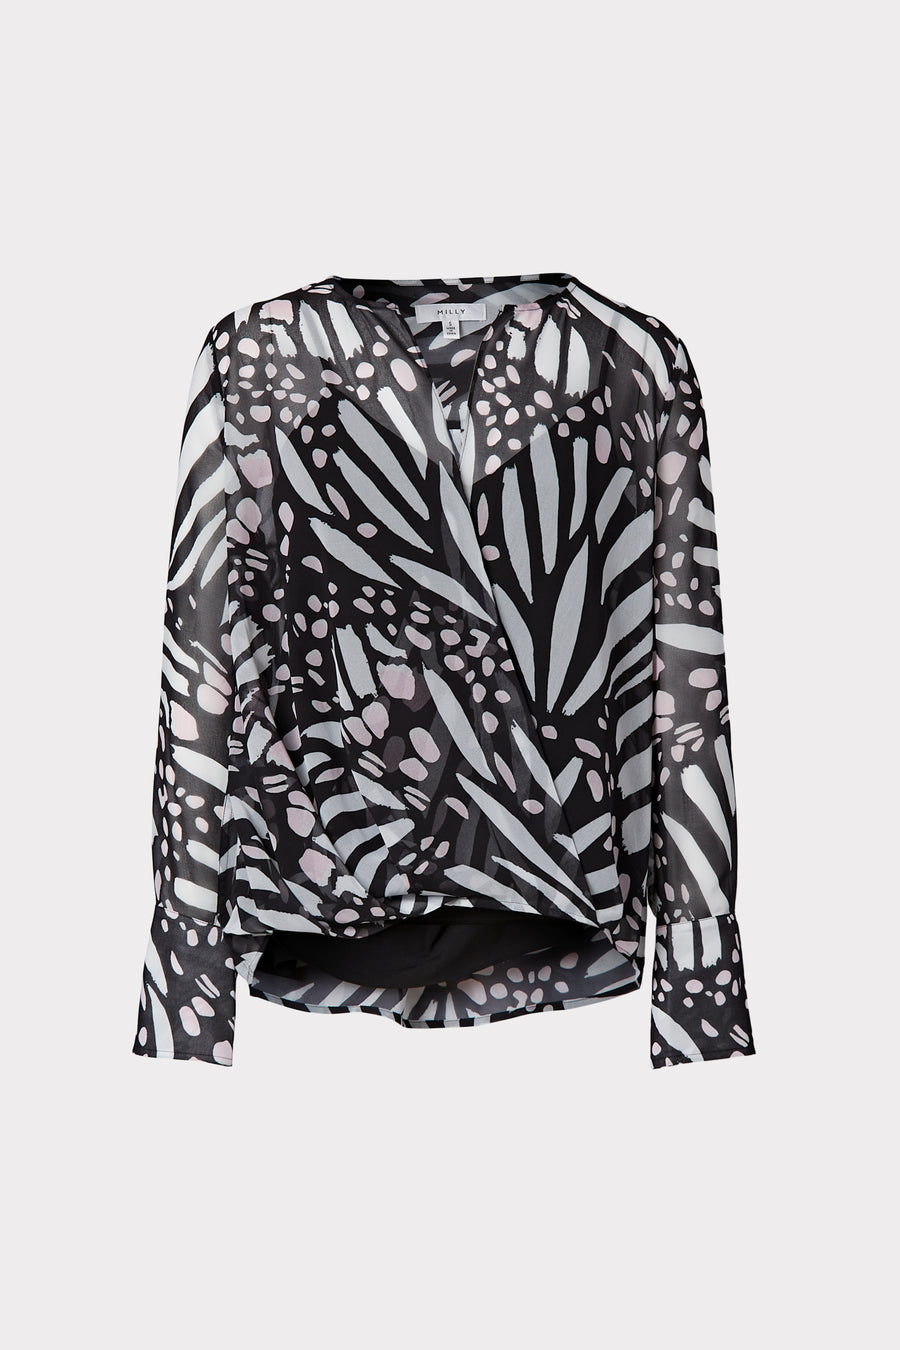 Elysa Graphic Butterfly Top